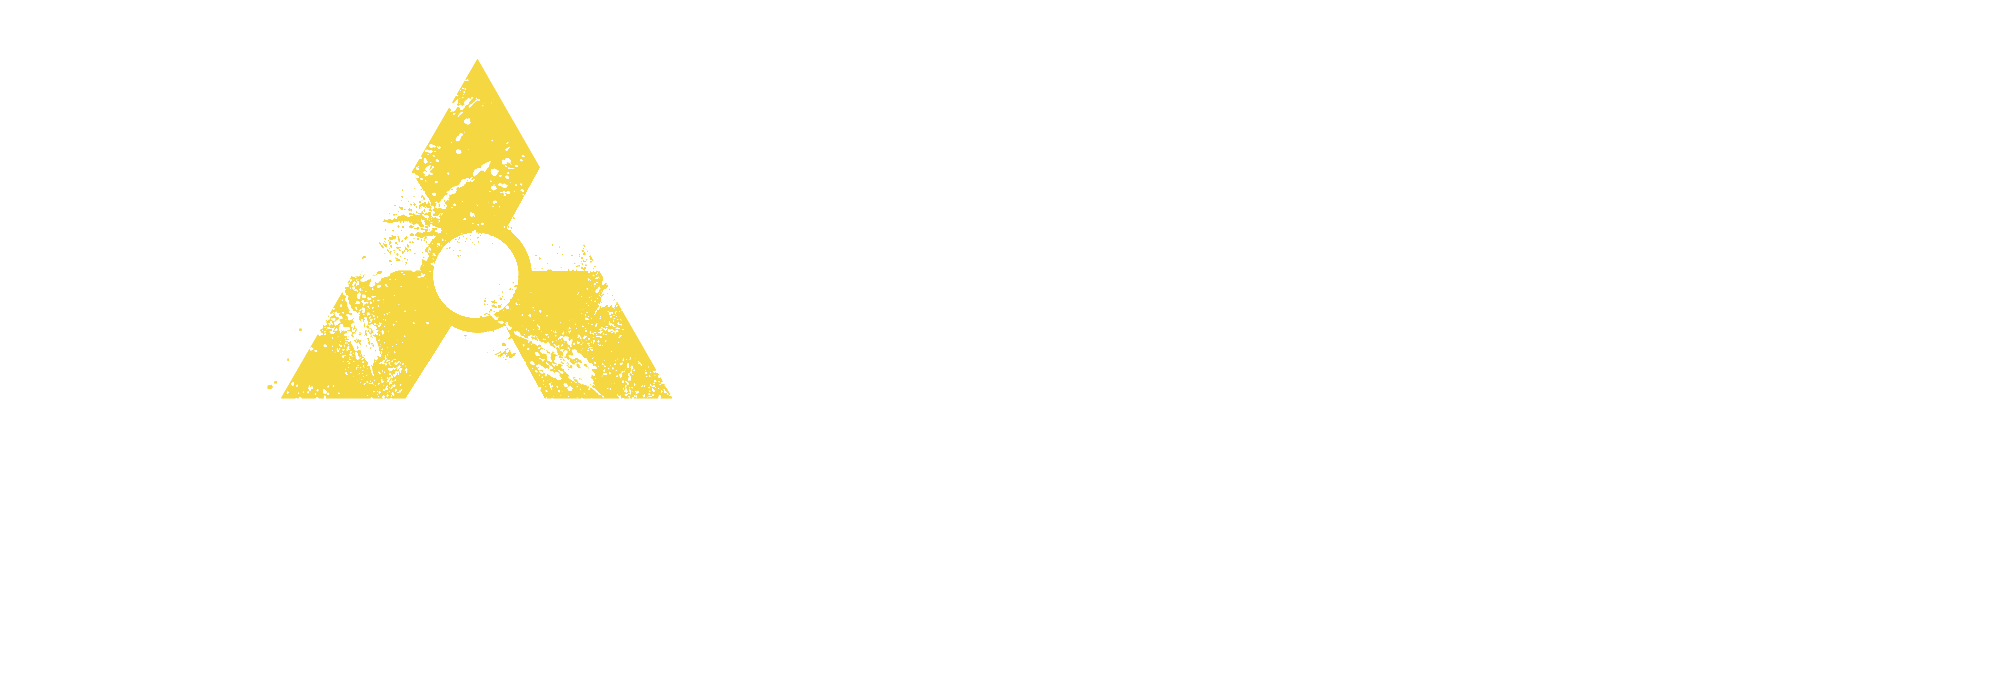 damage-ledepot